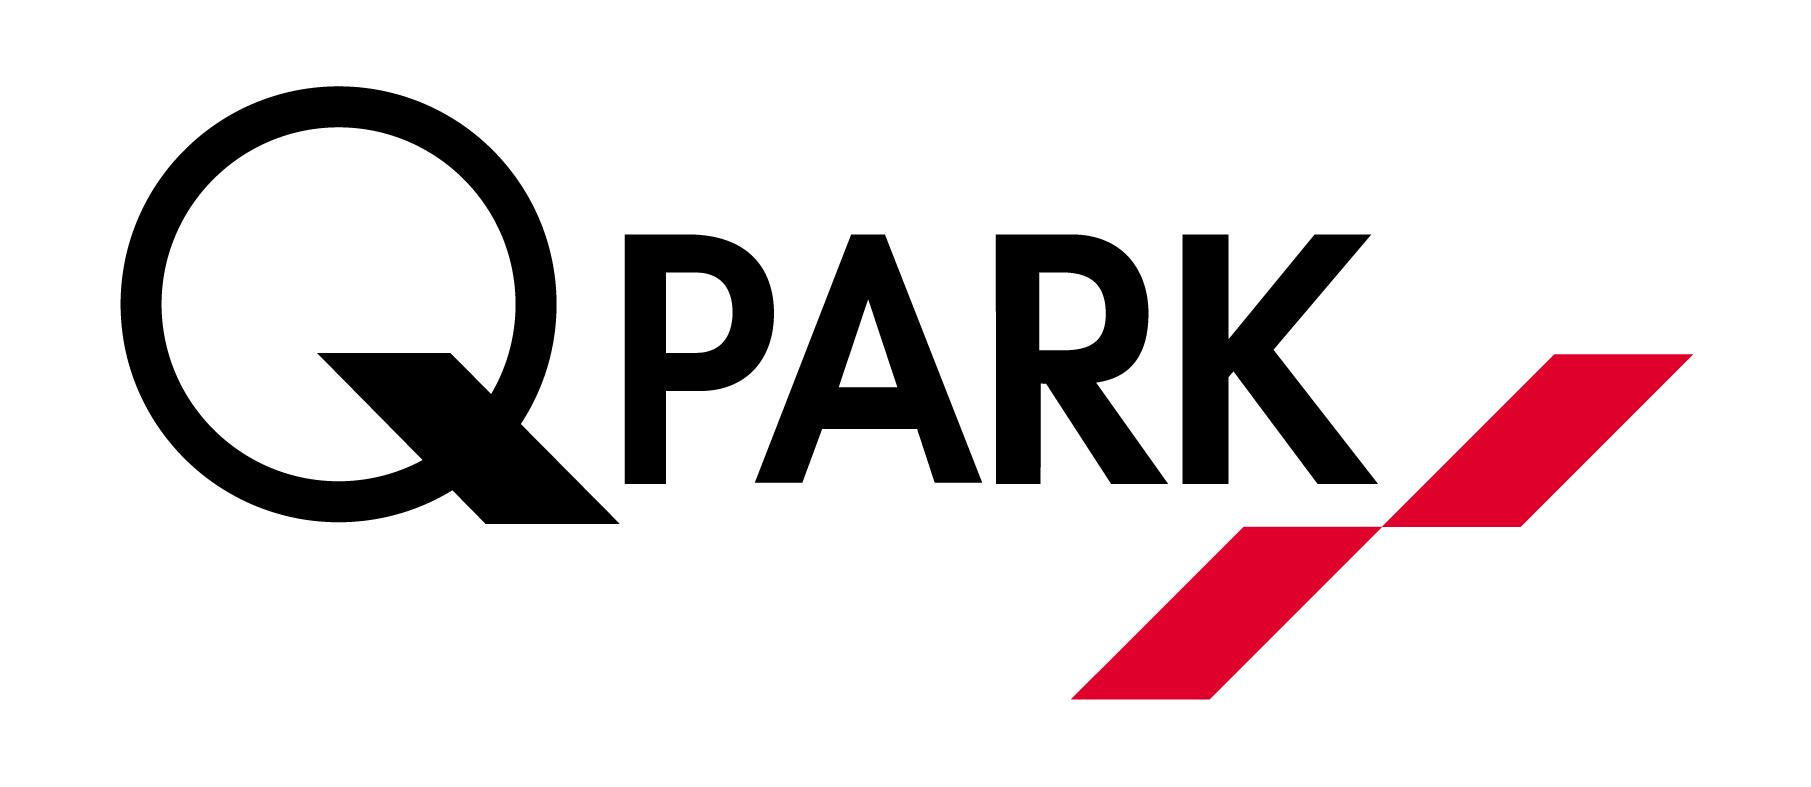 Q-Park pre-booking offers